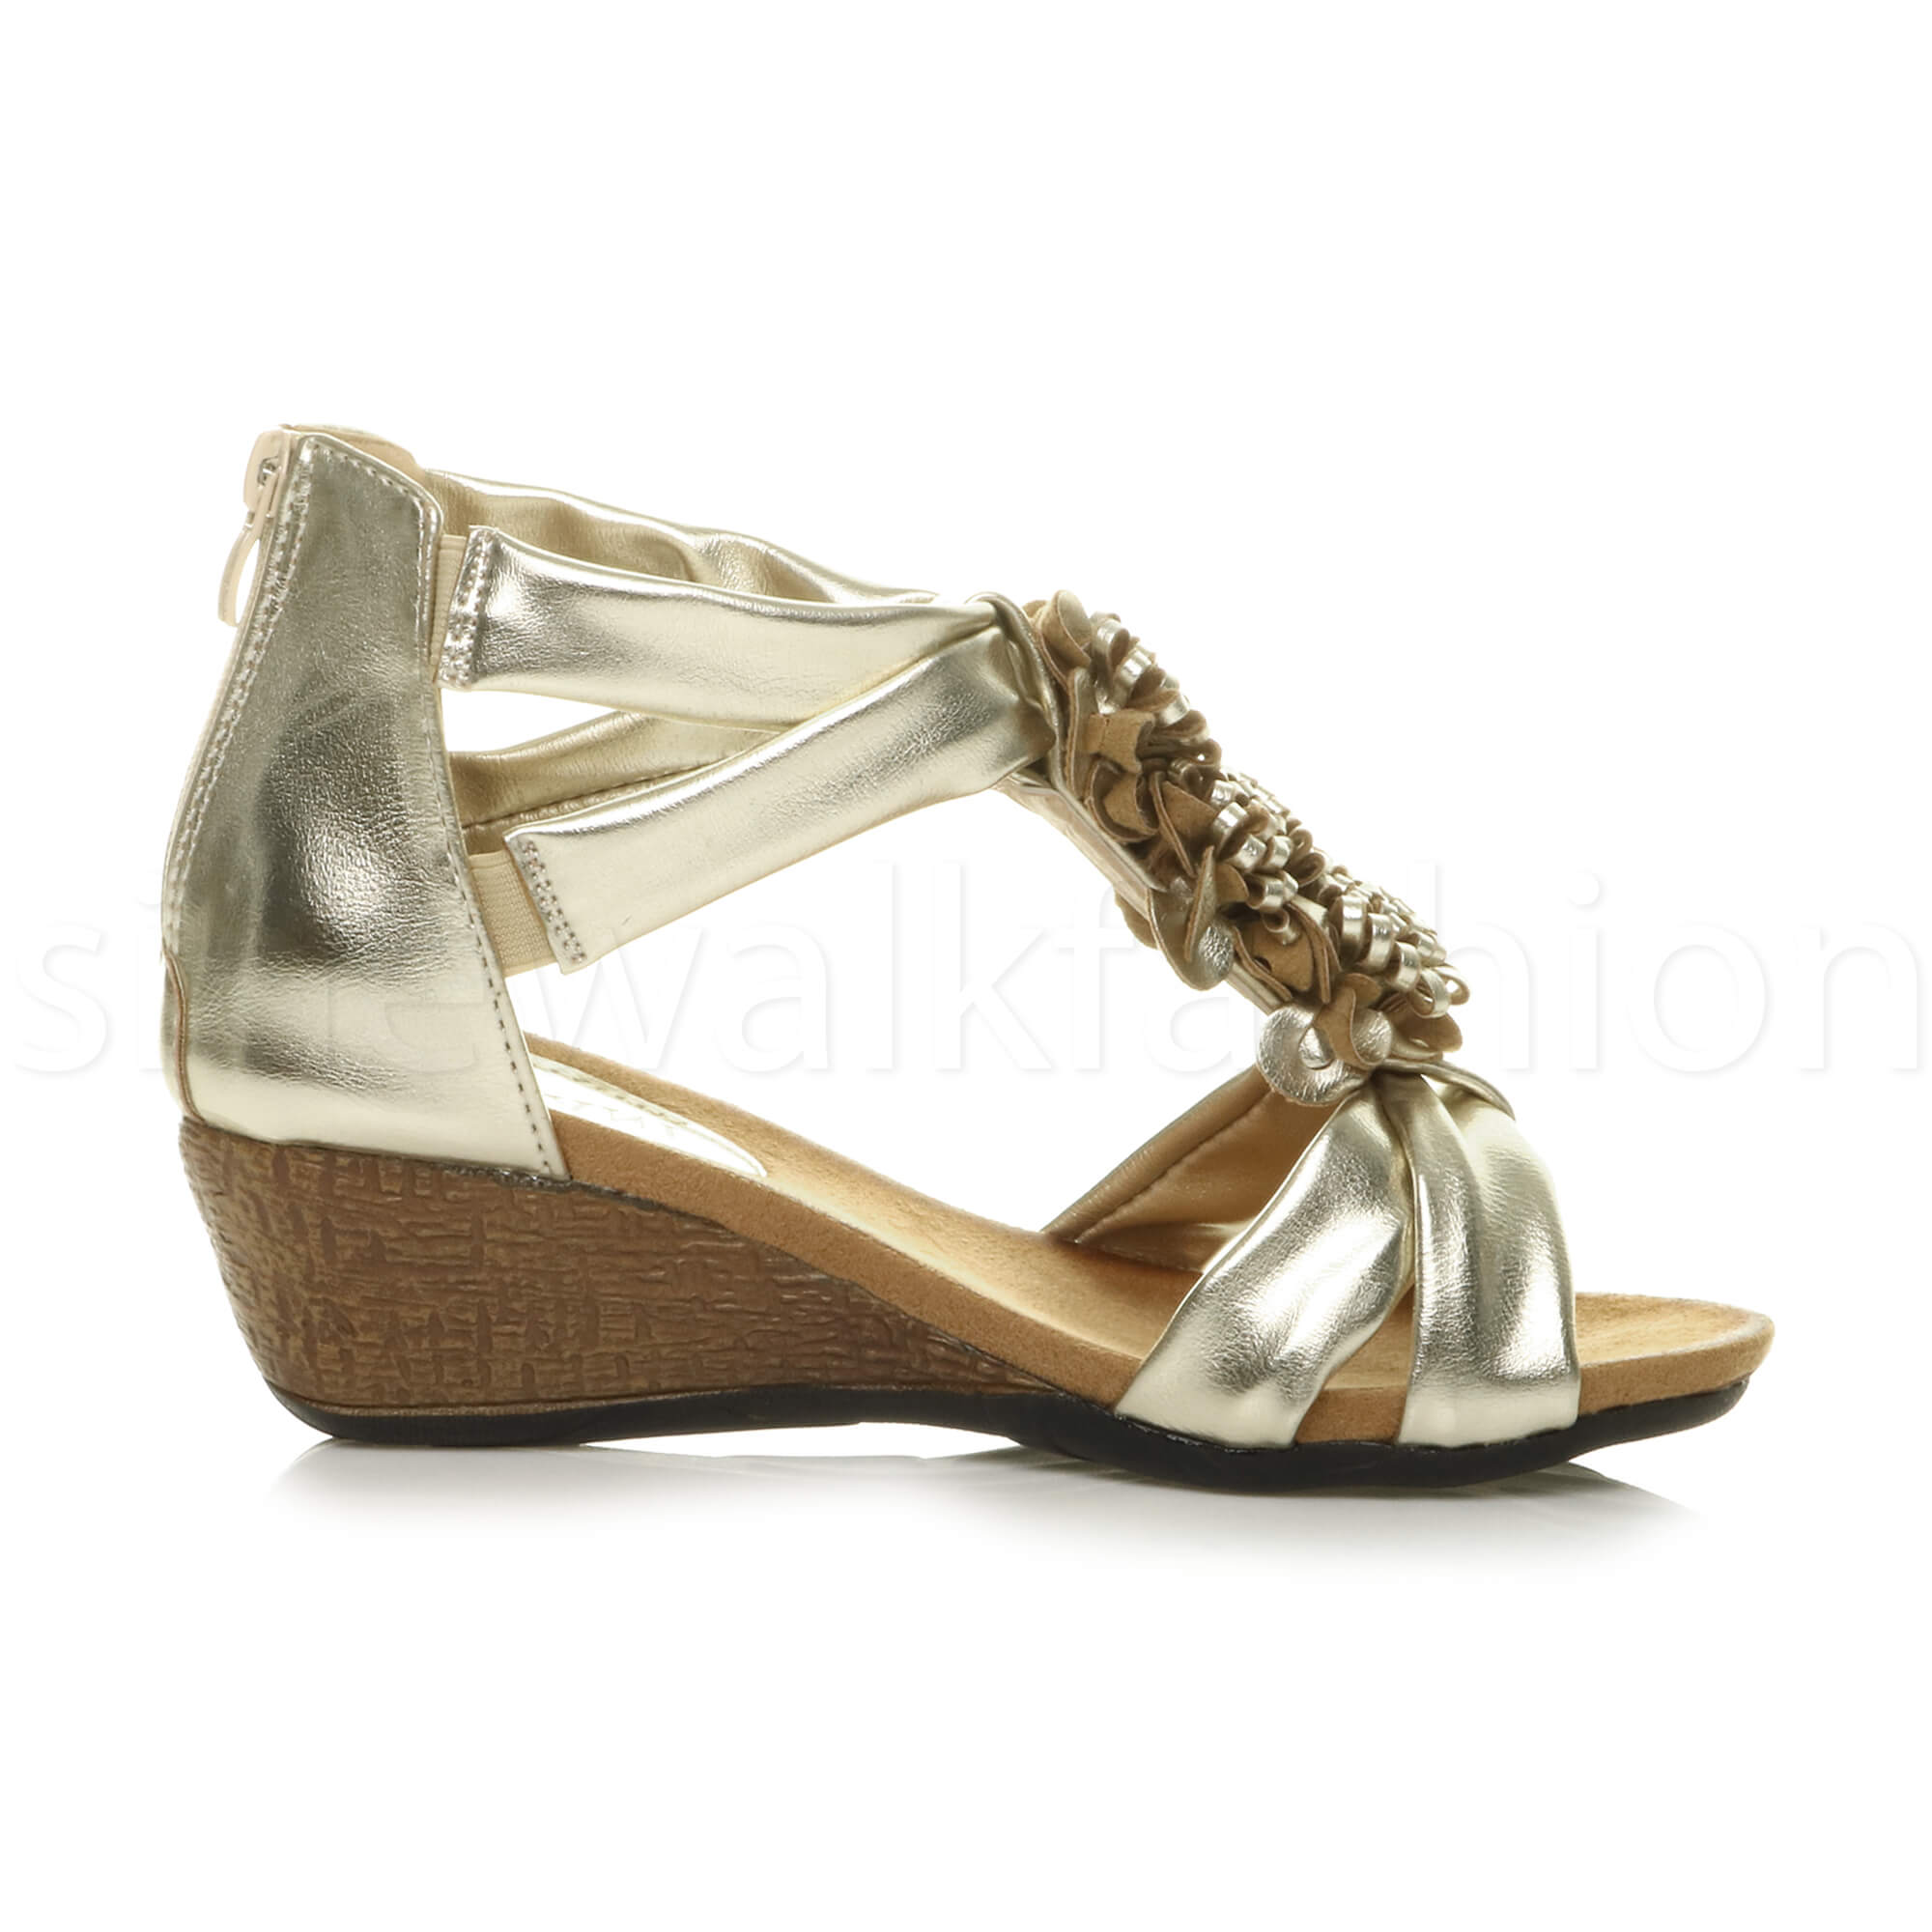 Details about Womens ladies mid wedge heel strappy flower ruffle t bar summer sandals size